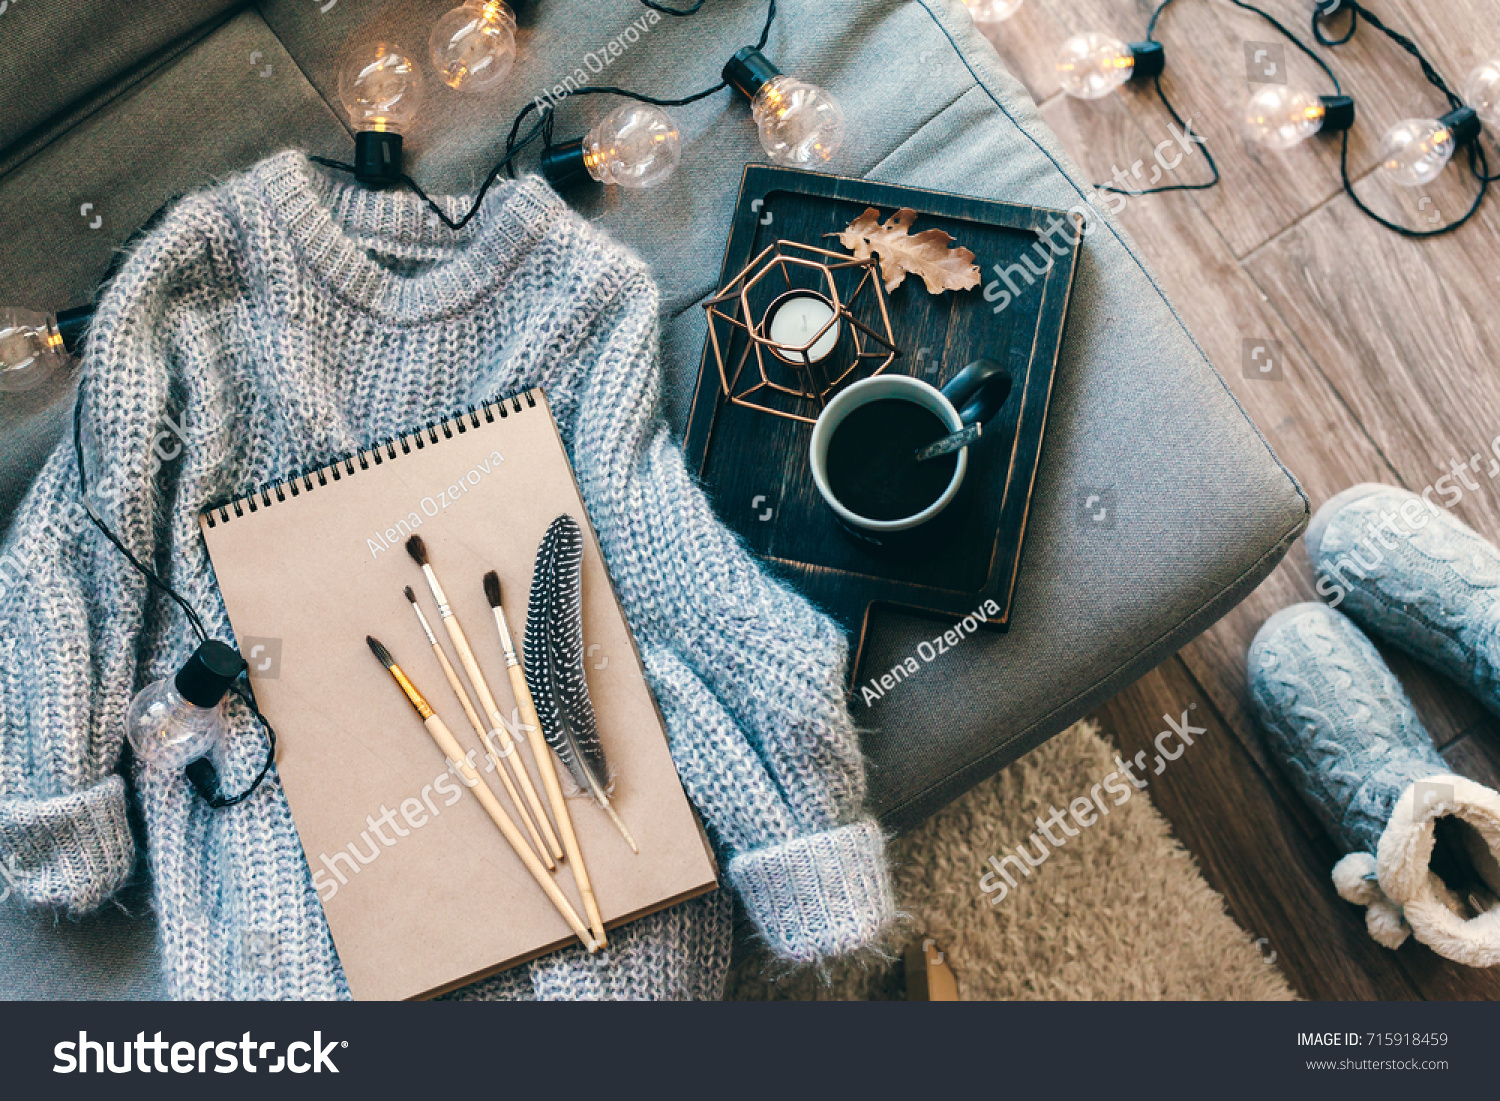 Still life details. Cup of coffee on rustic wooden tray, sketchbook and warm woolen sweater on sofa, decorated with led lights, top view point. Autumn weekend concept. Hobby and crafts. #715918459